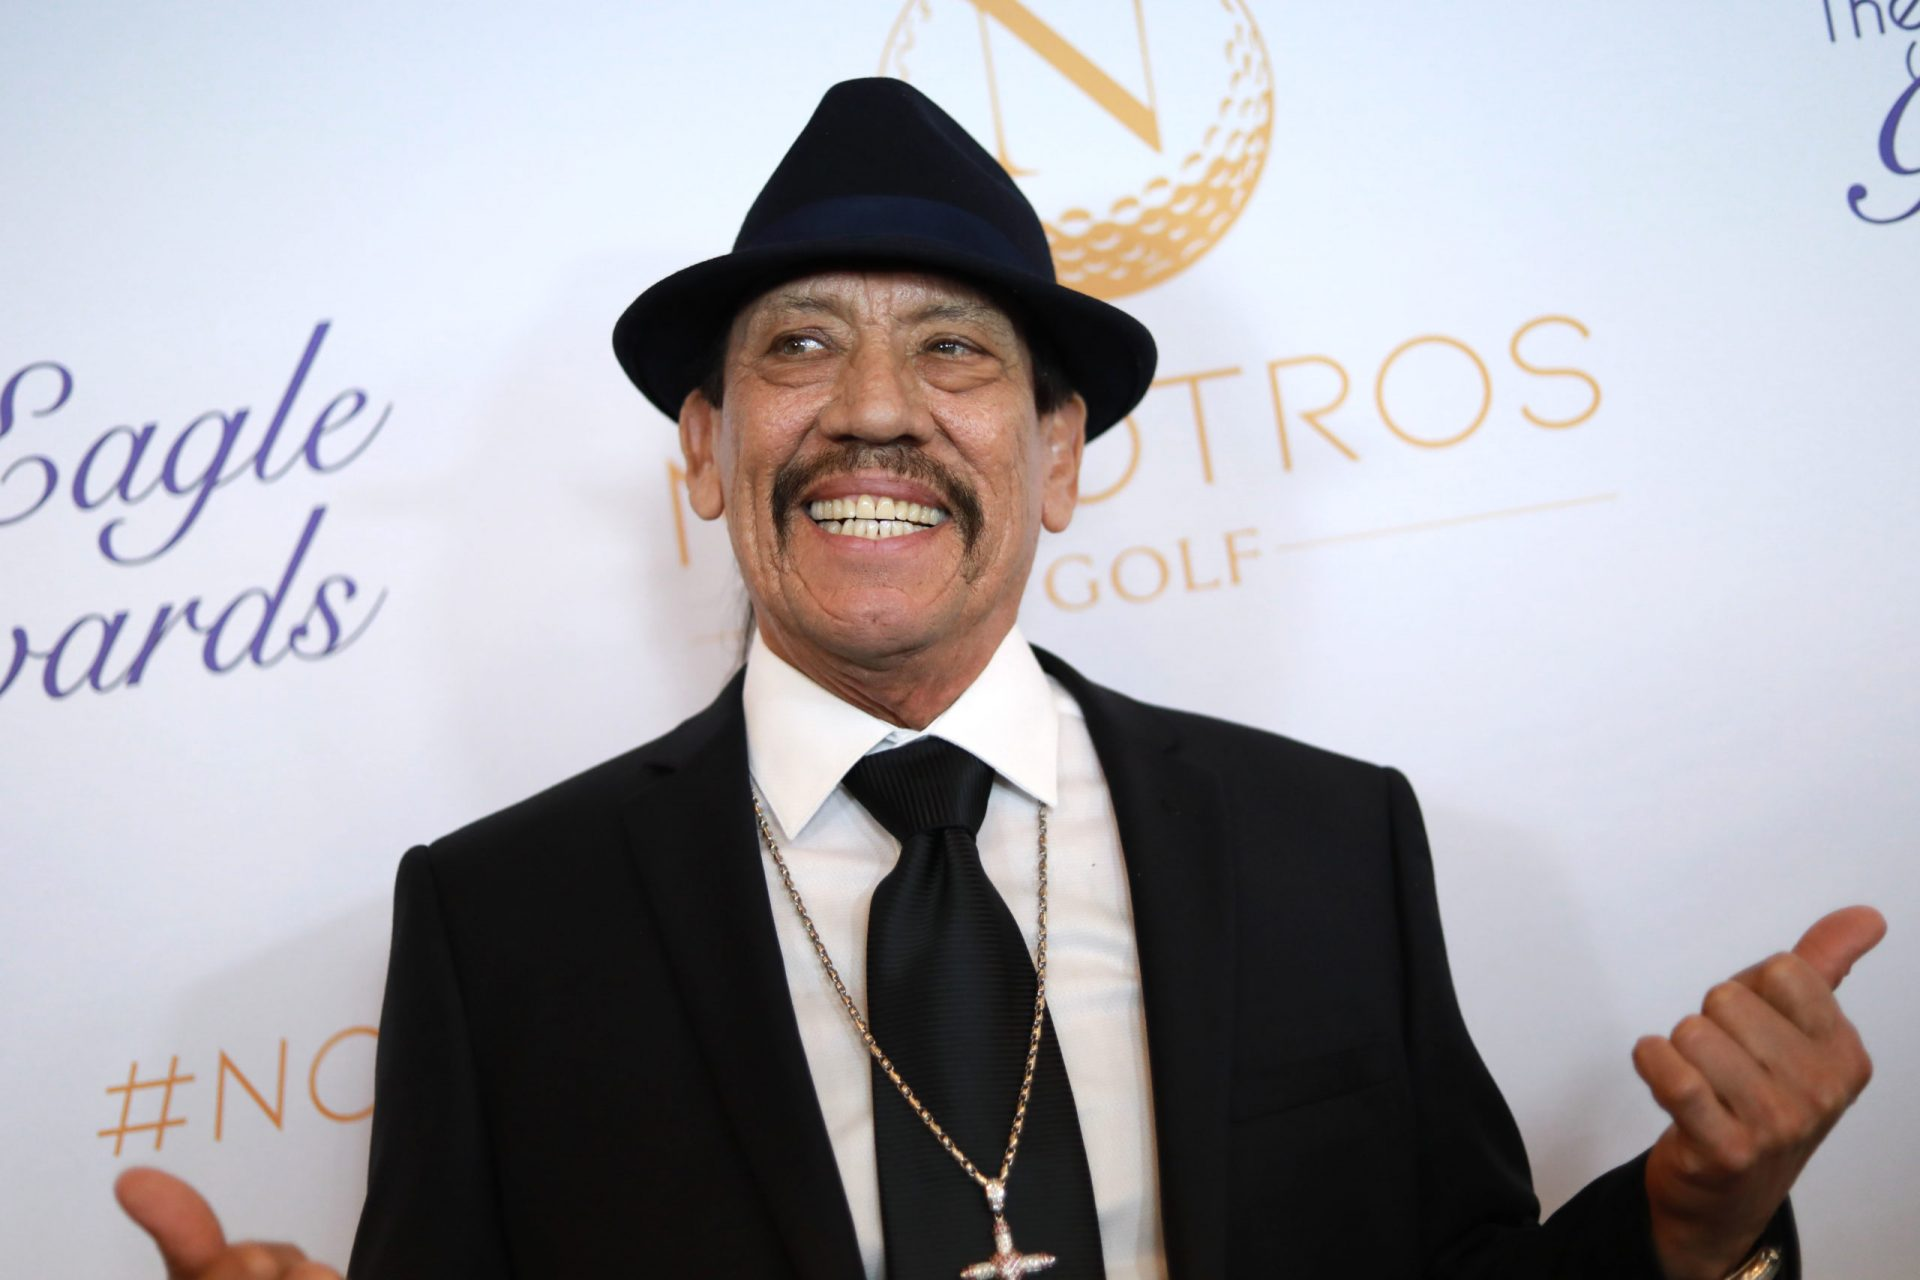 Danny Trejo – 5 Feet 6 Inches